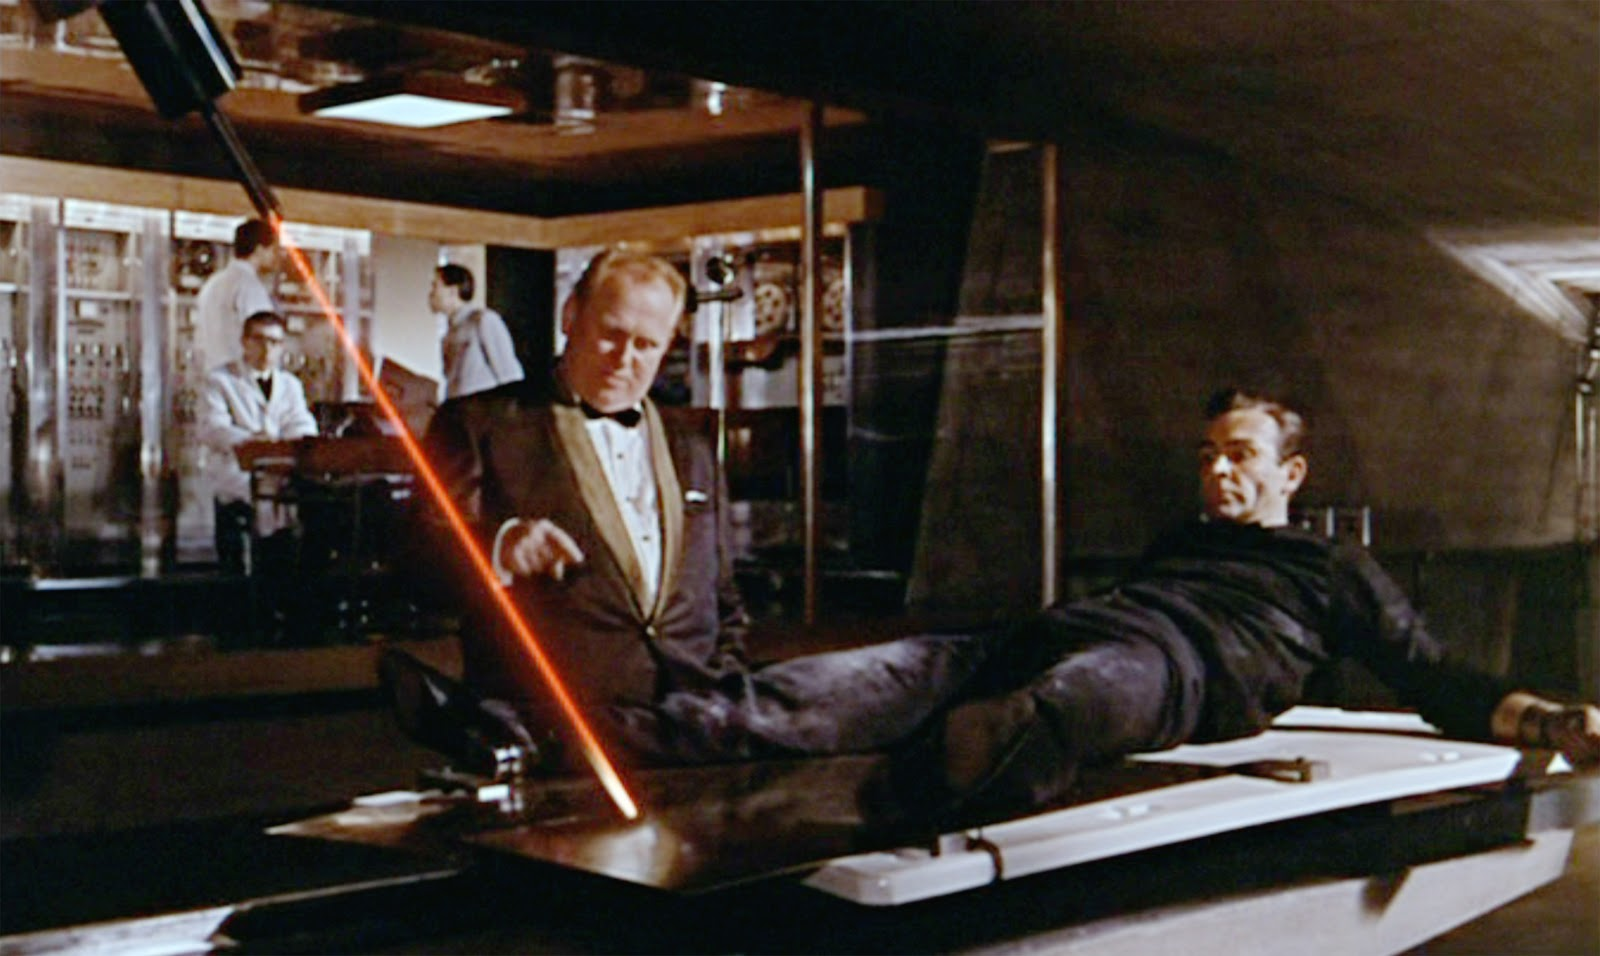 Goldfinger aims his laser at James Bond in Goldfinger